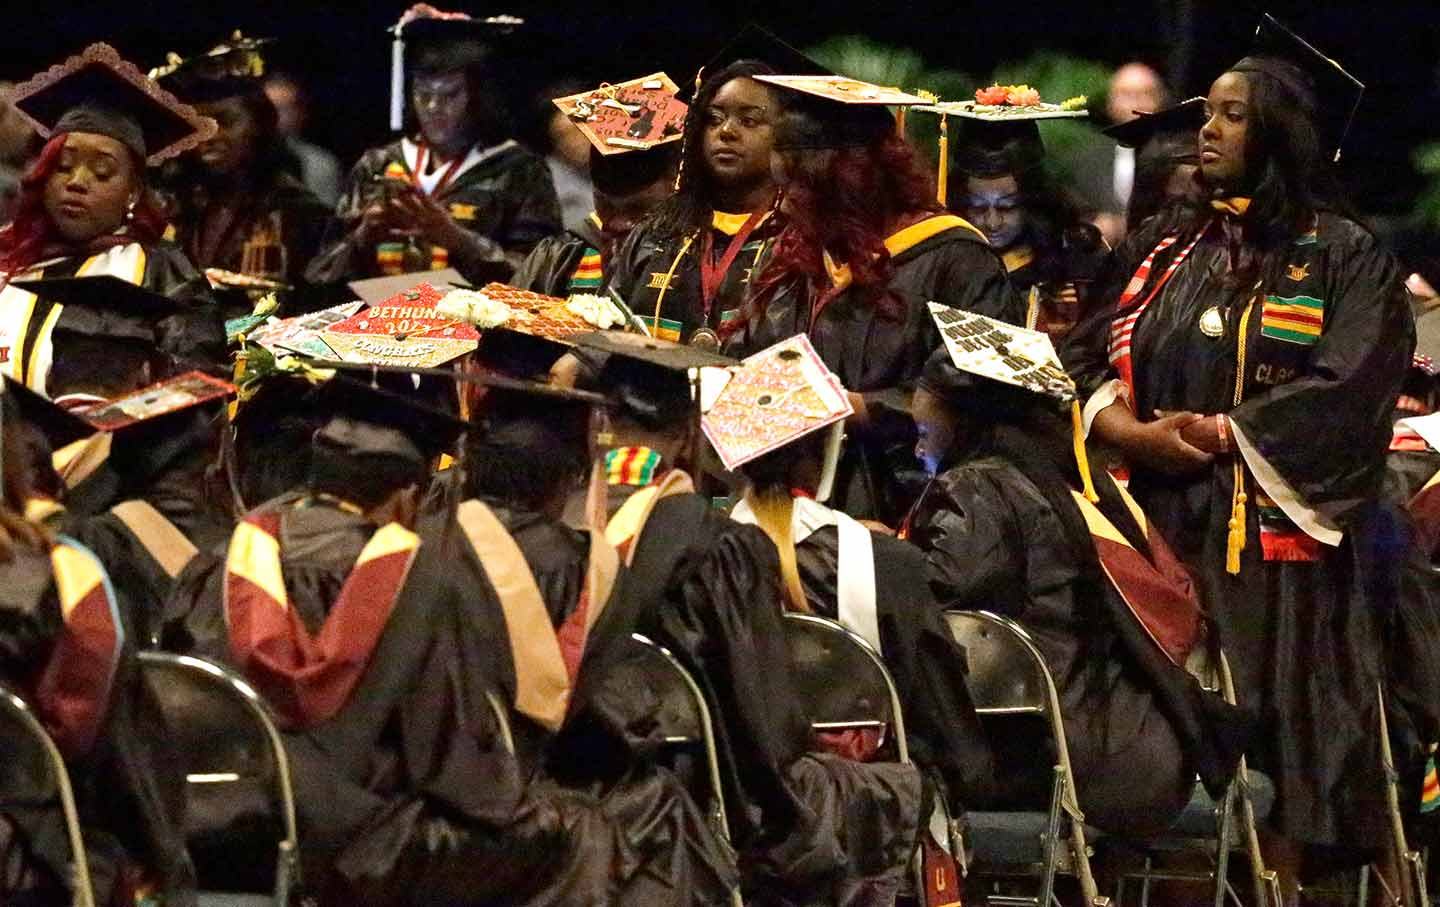 Betsy DeVos Booed During Commencement Speech, Grads Turn Backs